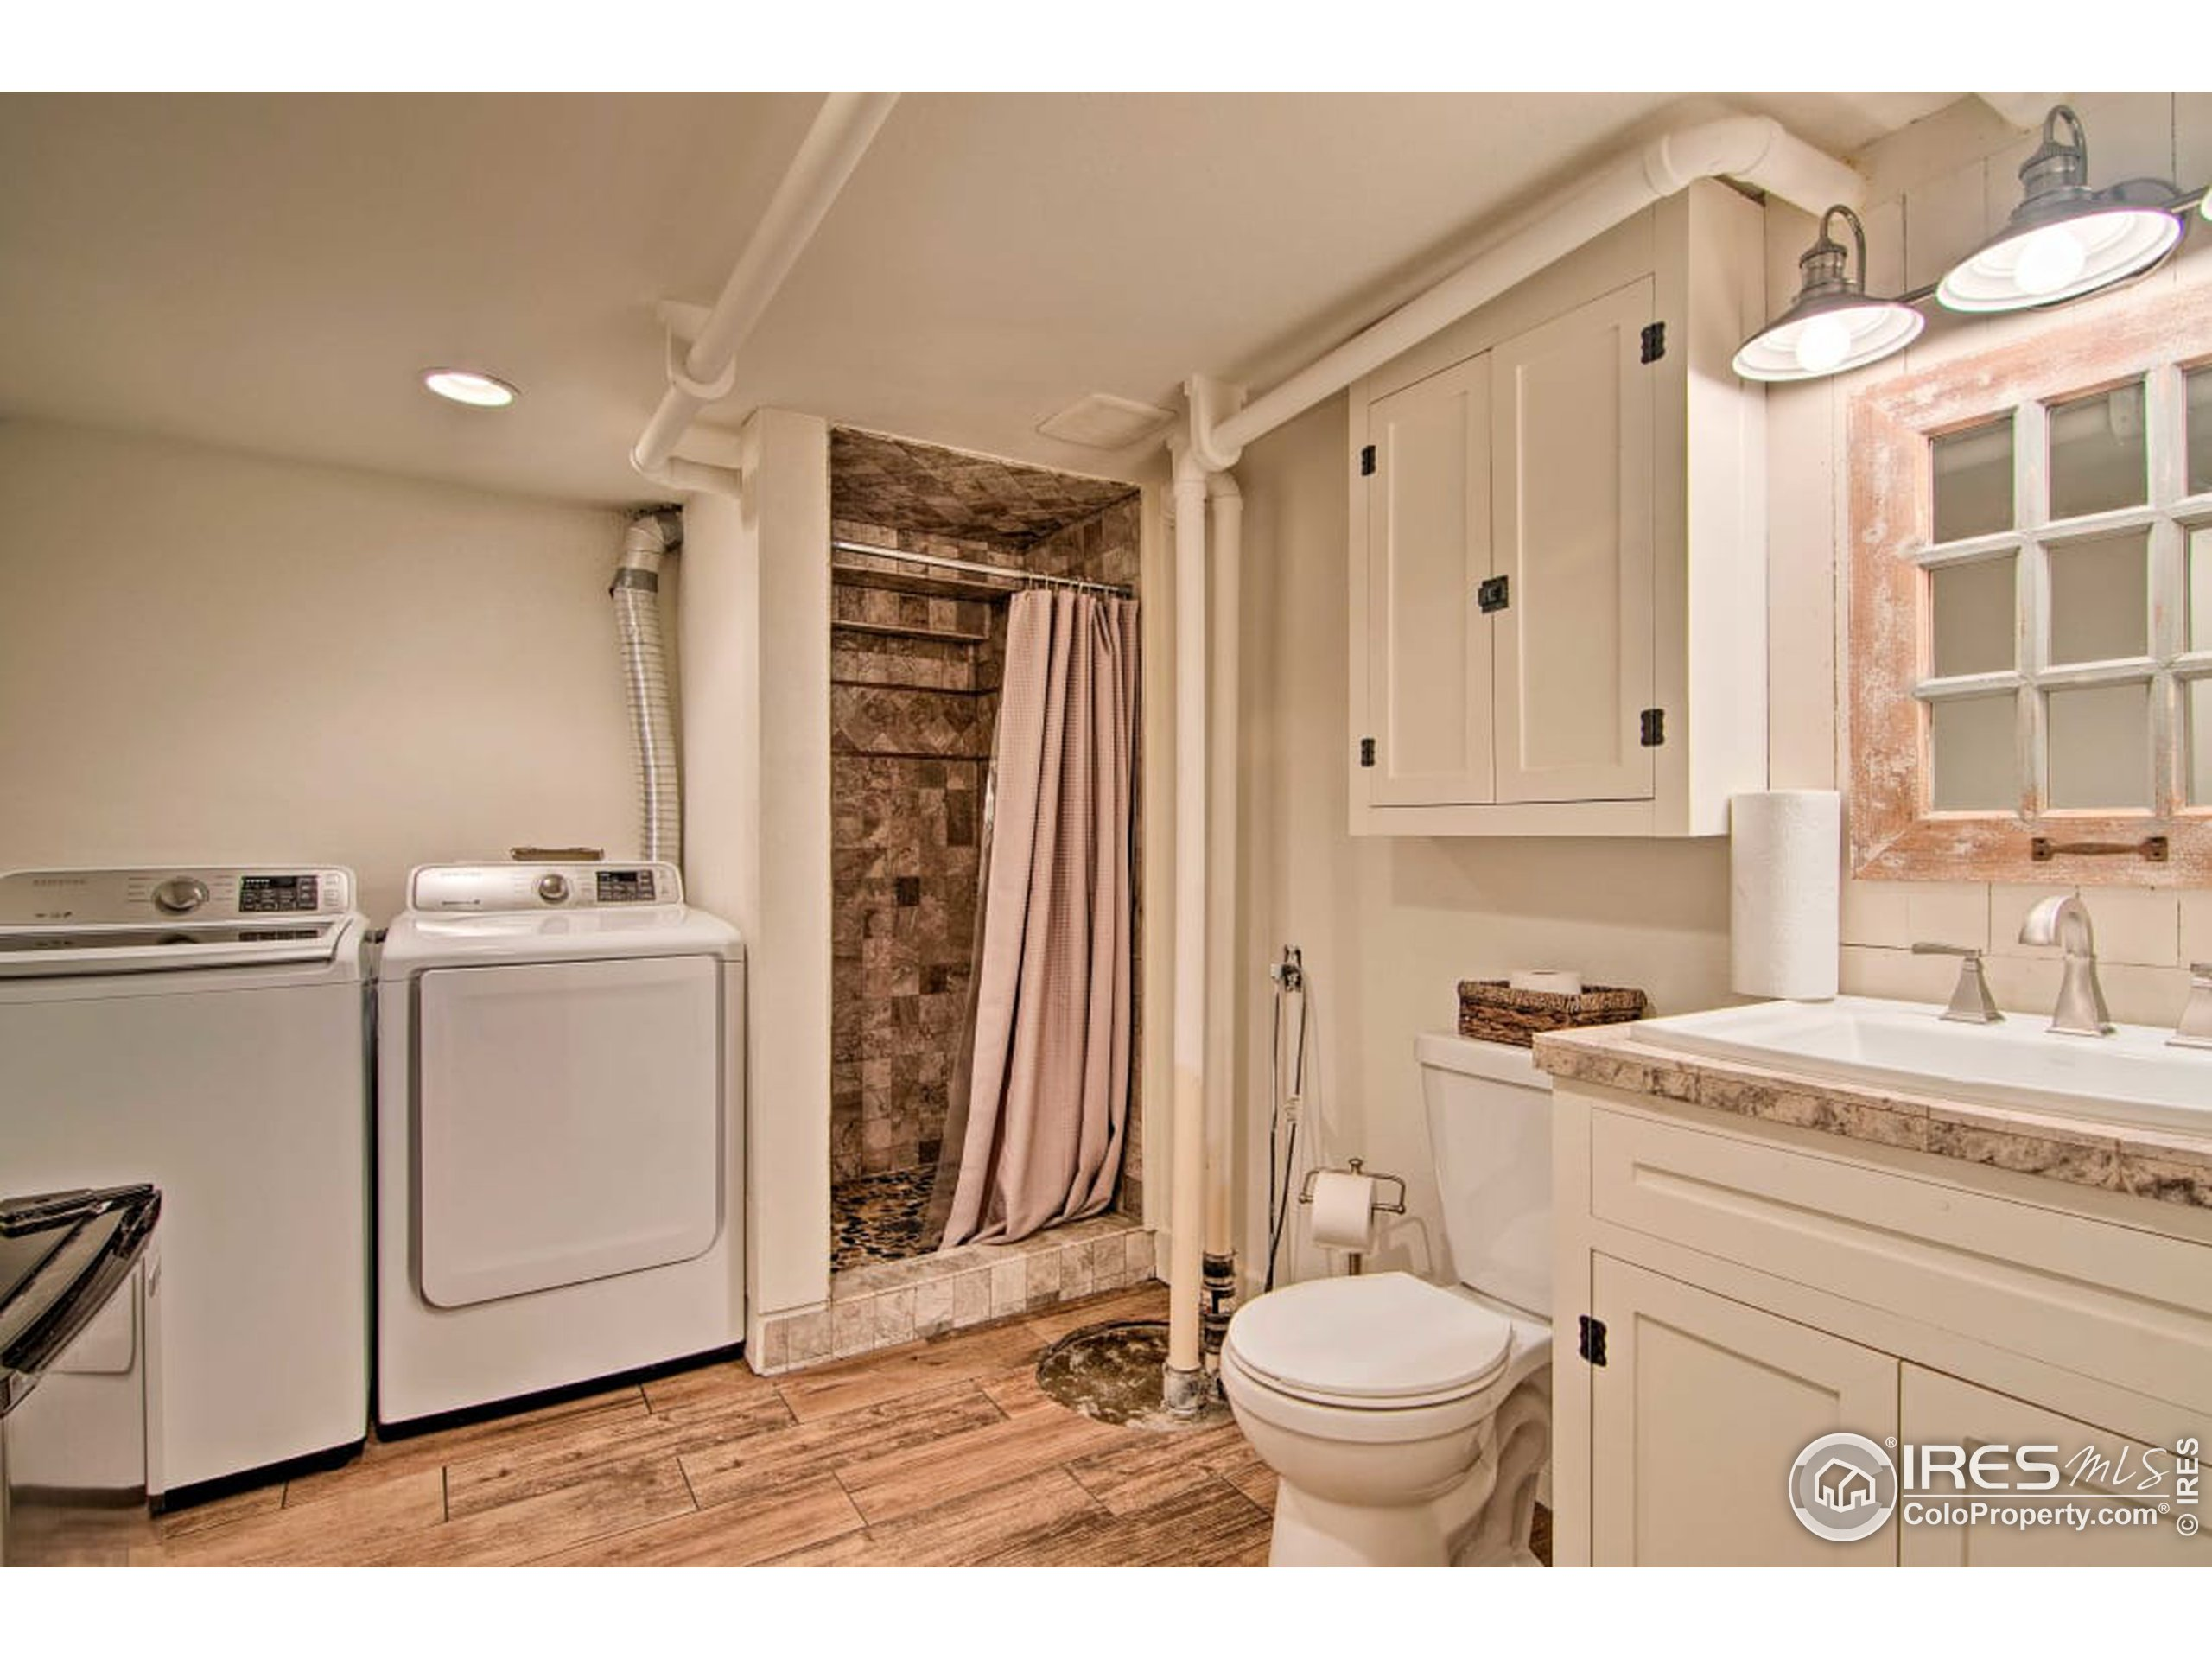 3/4 Bath with washer and dryer